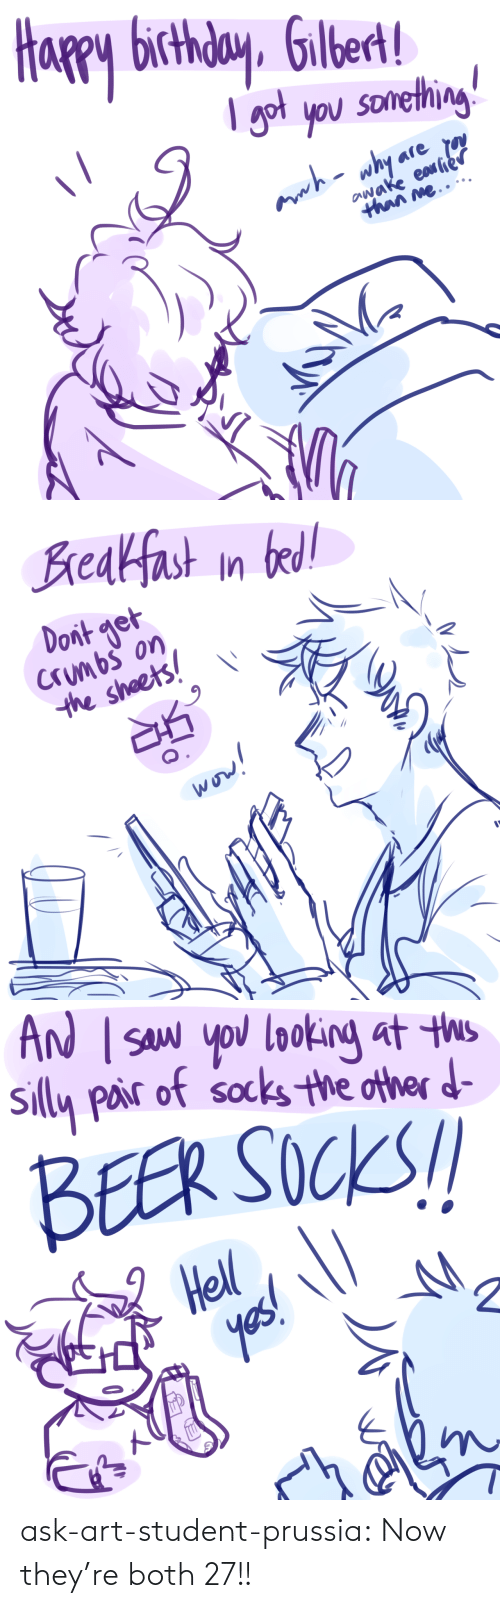 Target, Tumblr, and Blog: ask-art-student-prussia:  Now they're both 27!!